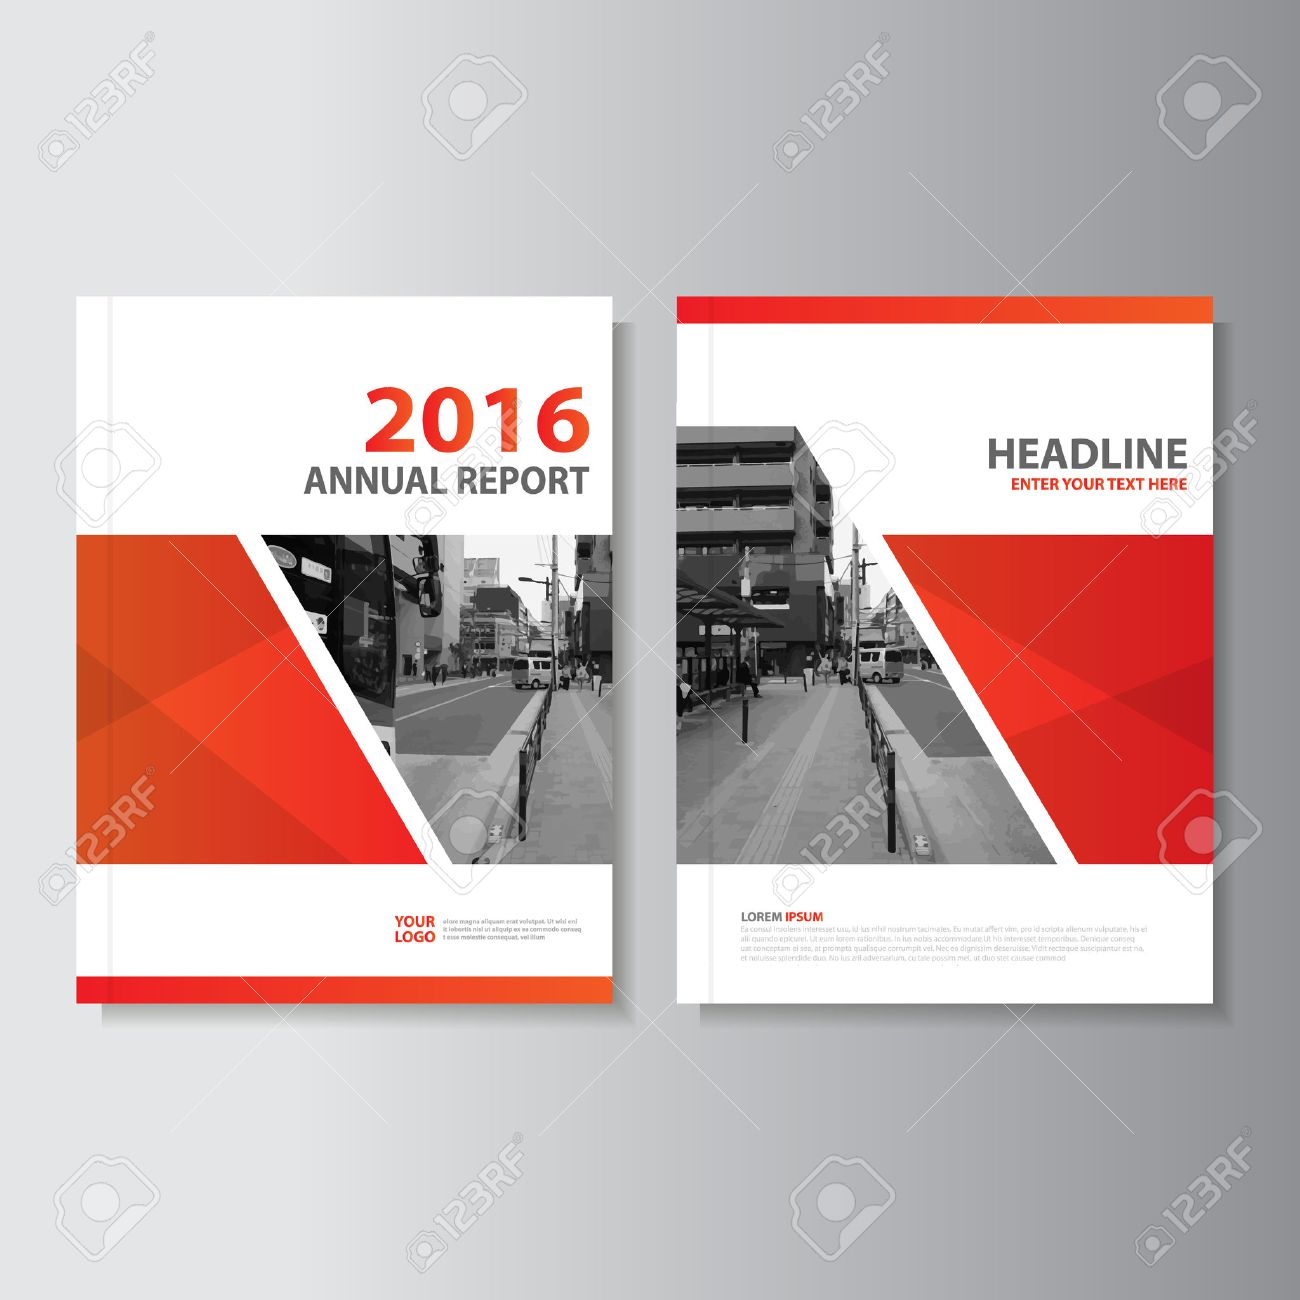 doc annual report cover template best ideas about writting a cover letterbrochure template layout cover design annual report cover template